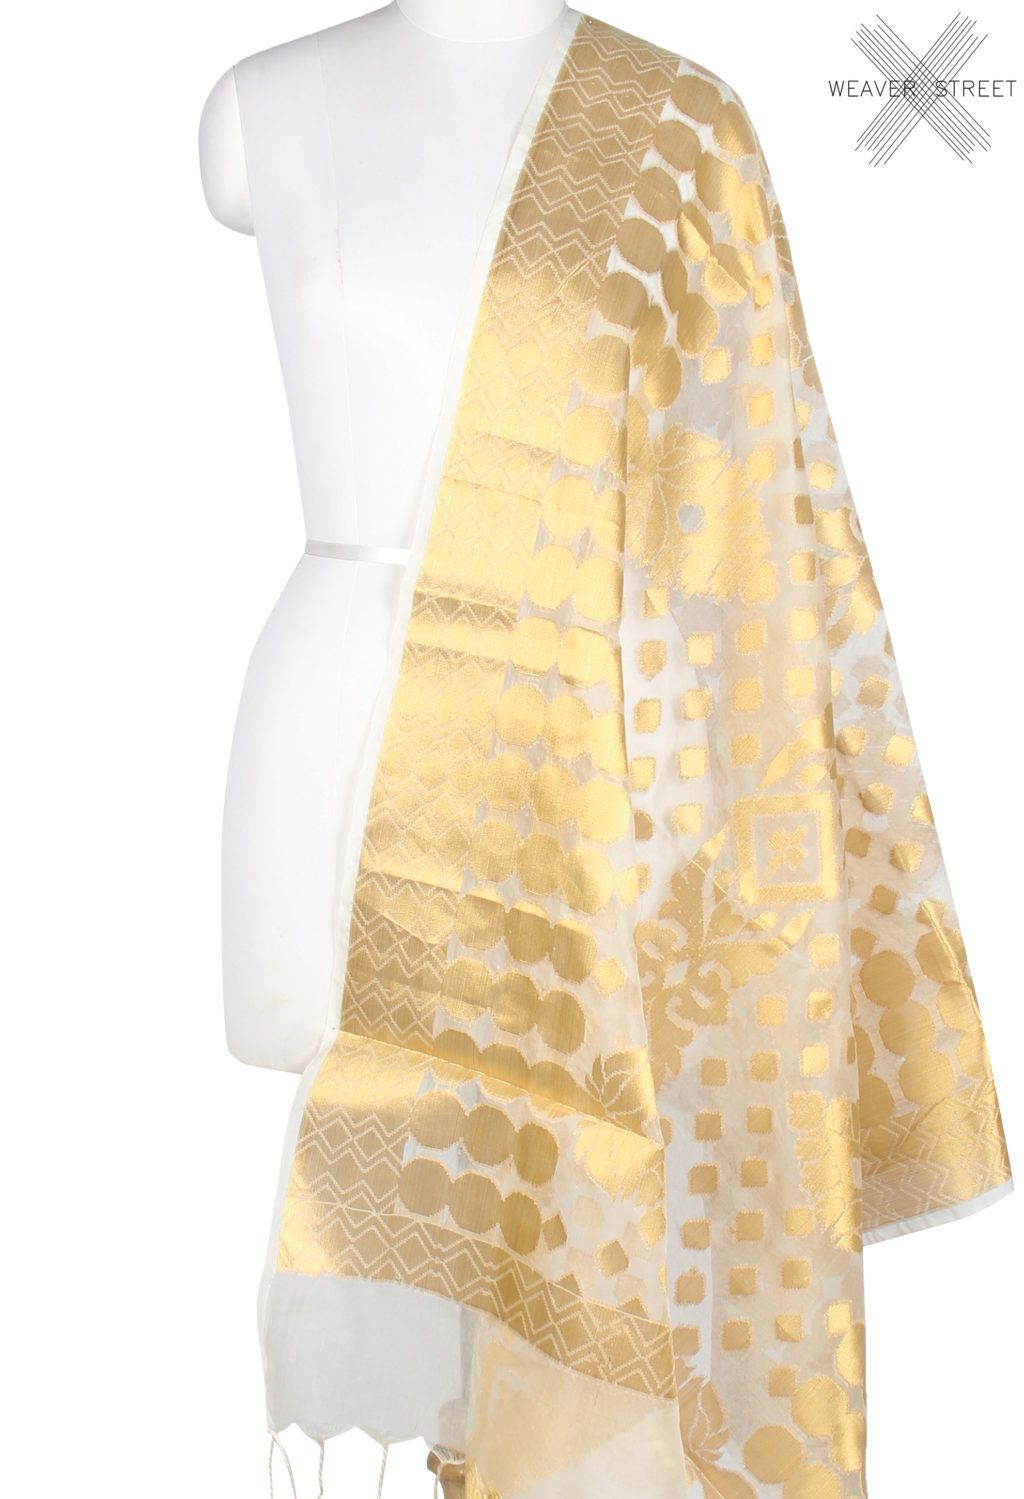 Kora art silk Banarasi dupatta with geometrical shape motifs and jaal (1) Main